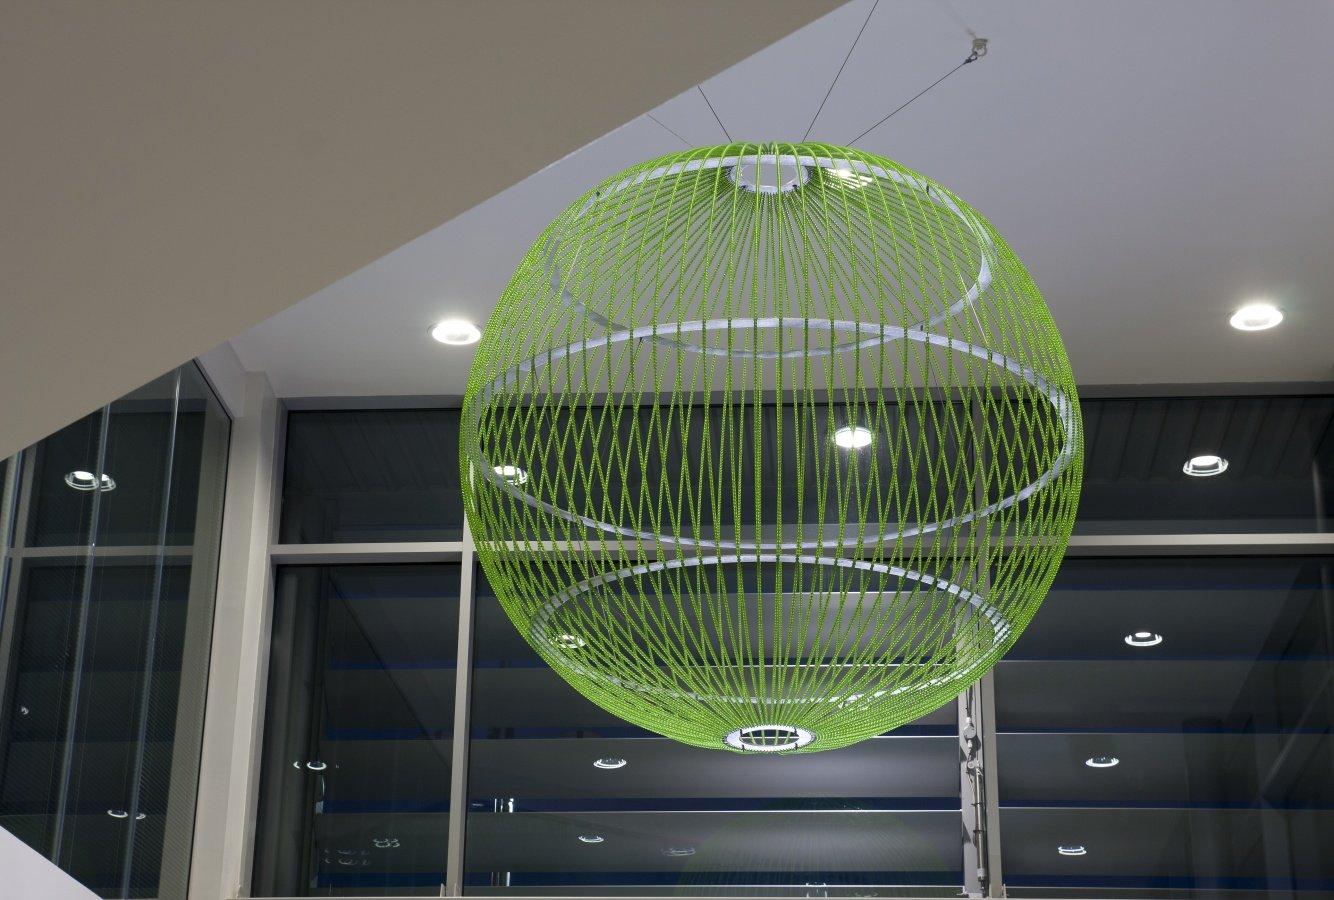 George Singer Modern Chandeliers And Lighting Installations Green Globe Photo 1 Www Georgesinger Co Uk